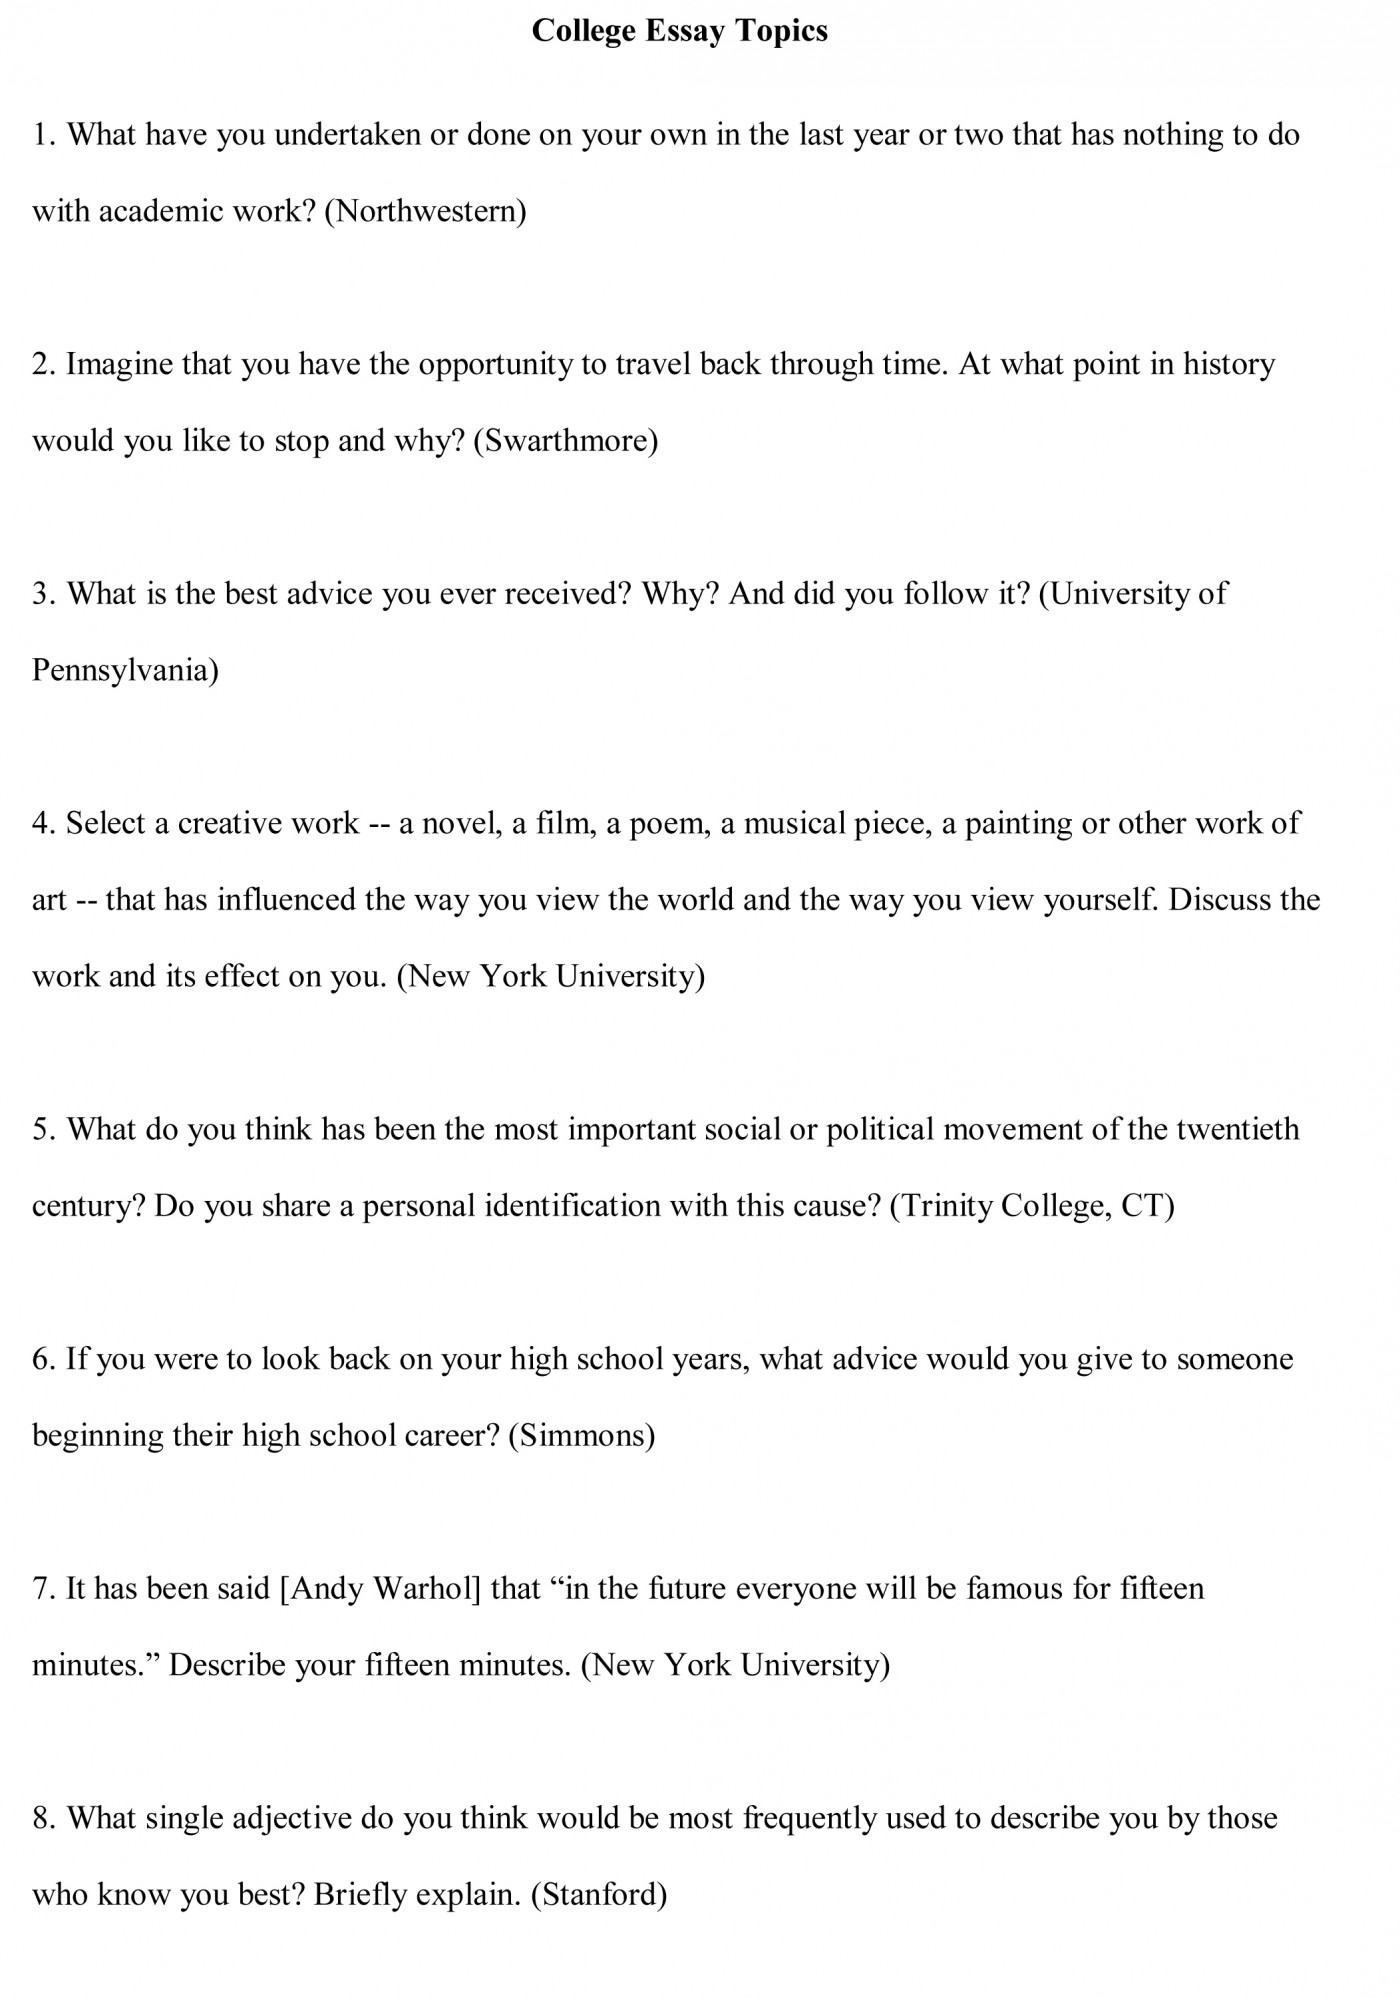 024 College Essay Topics Free Sample1 Example Dreaded Informative Ideas Rubric 6th Grade 1400